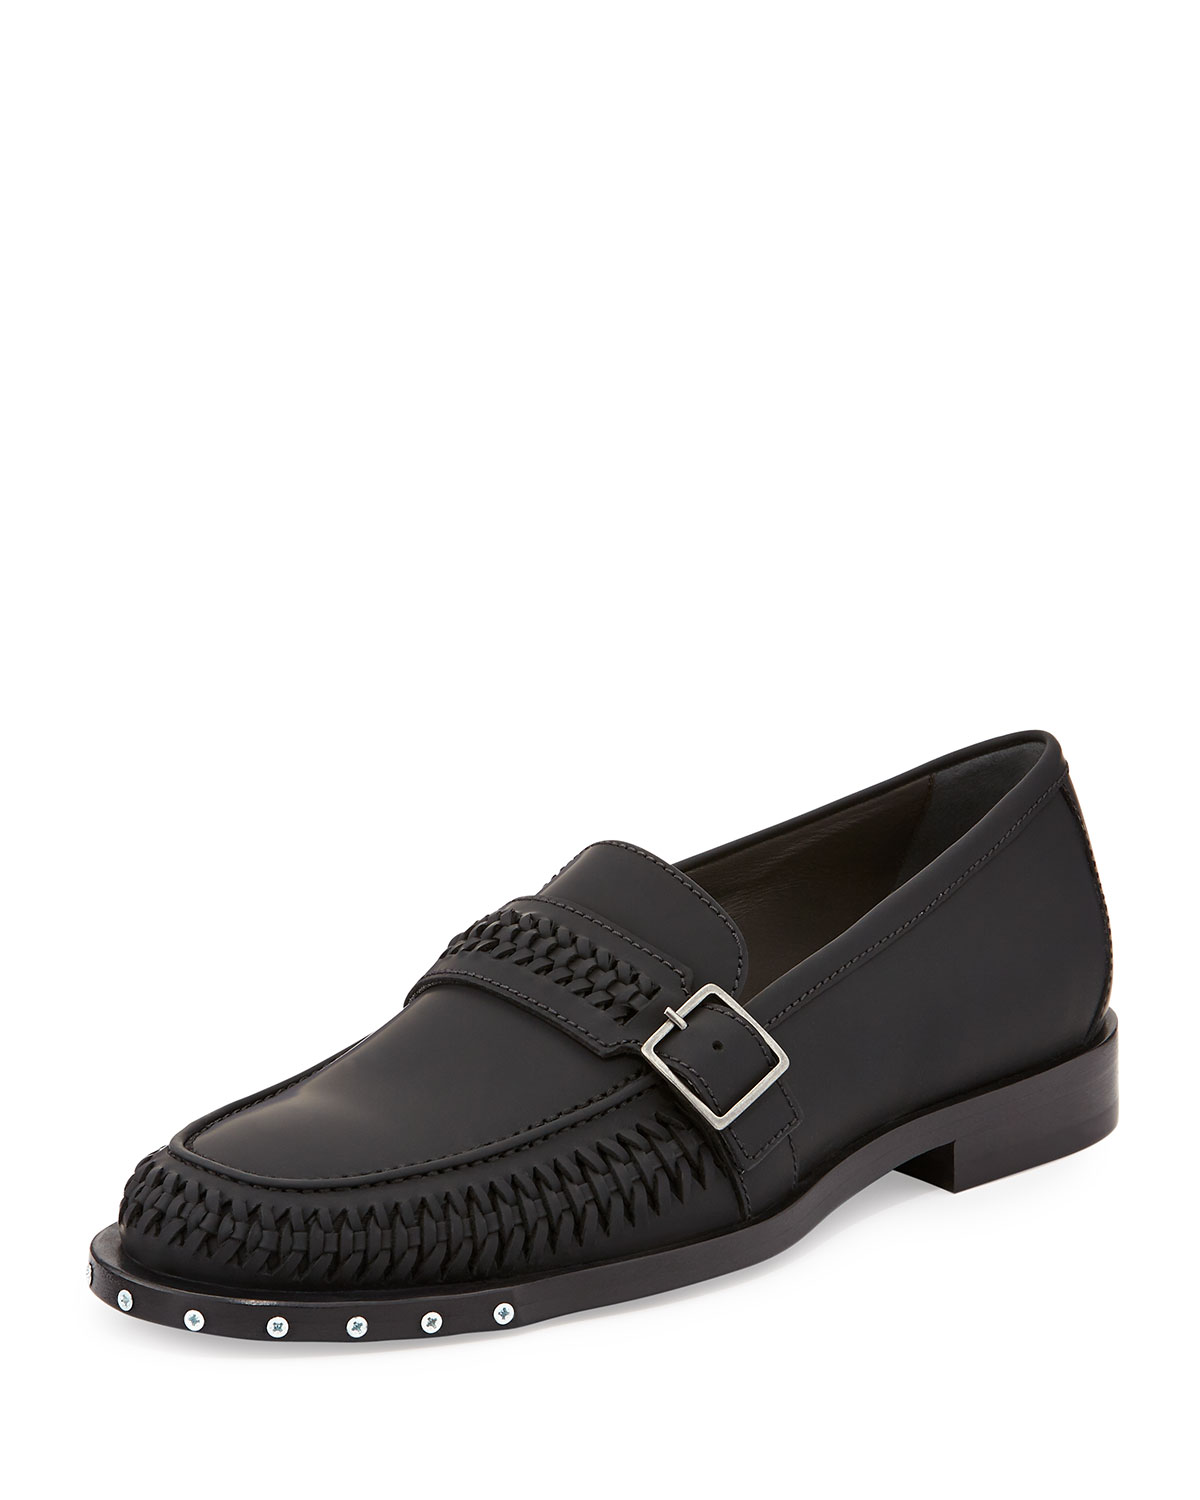 Lanvin Woven Rubberized Calfskin Loafer, Black